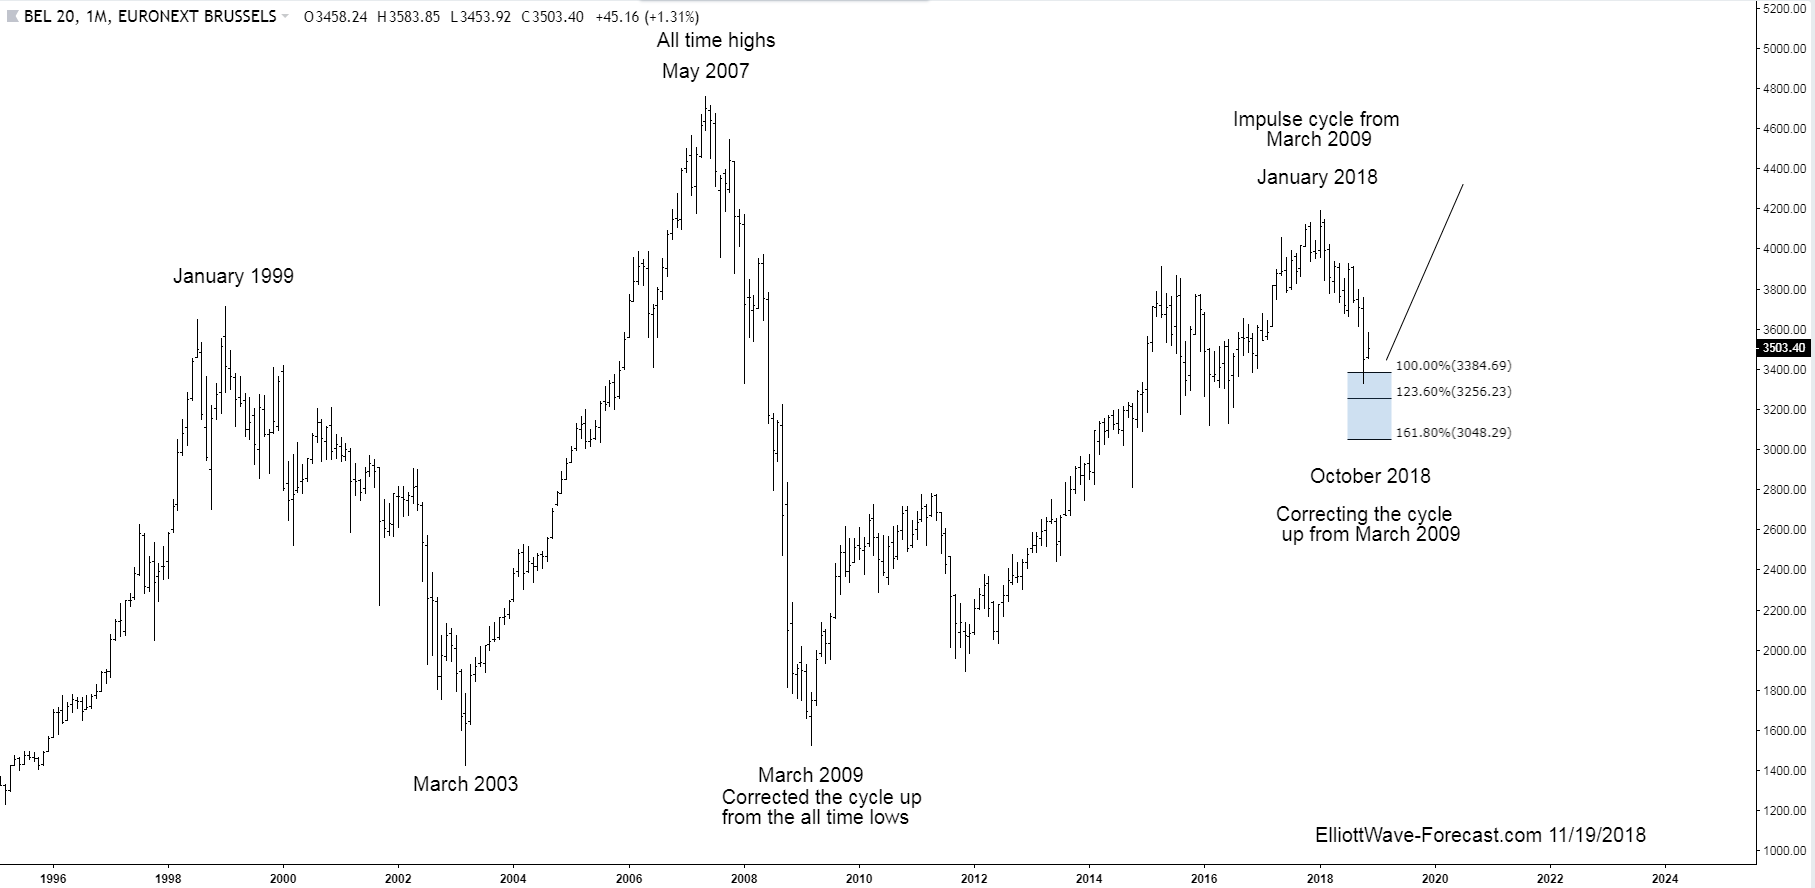 The BEL20 Index Long Term Bullish Trend and Cycles